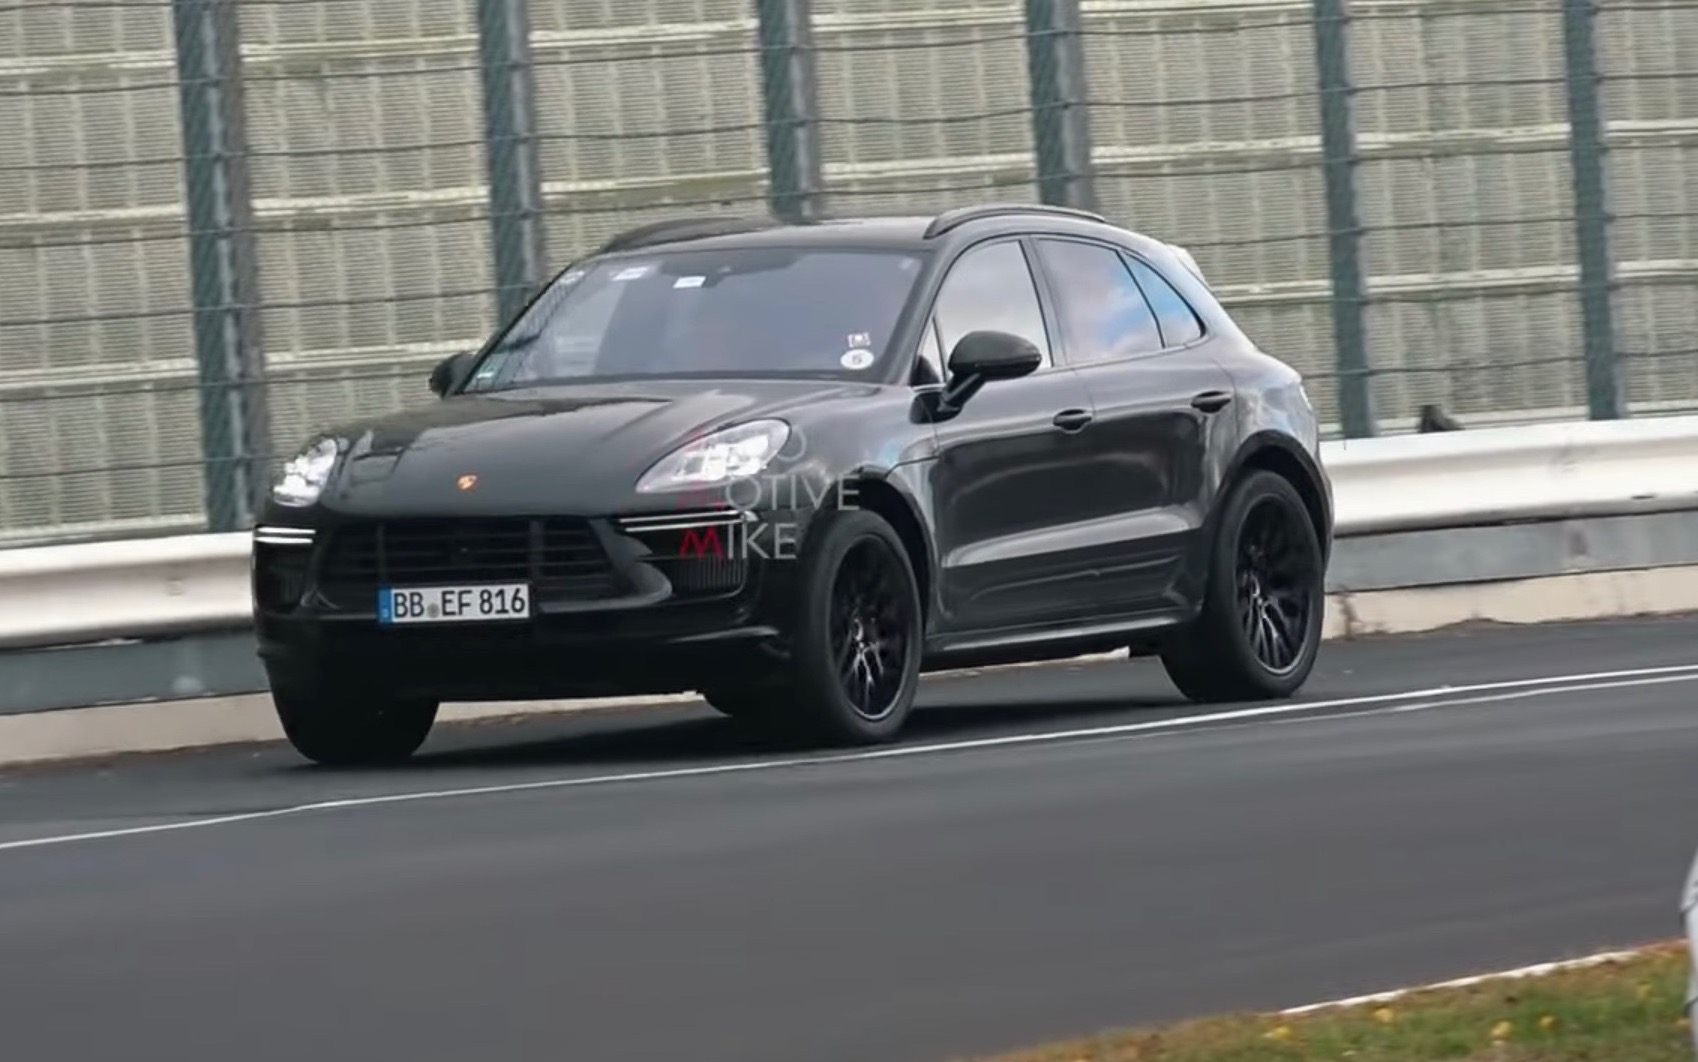 2020 Porsche Macan S, GTS, Interior, Hybrid >> 2020 Porsche Macan S Gts Interior Hybrid Upcoming New Car